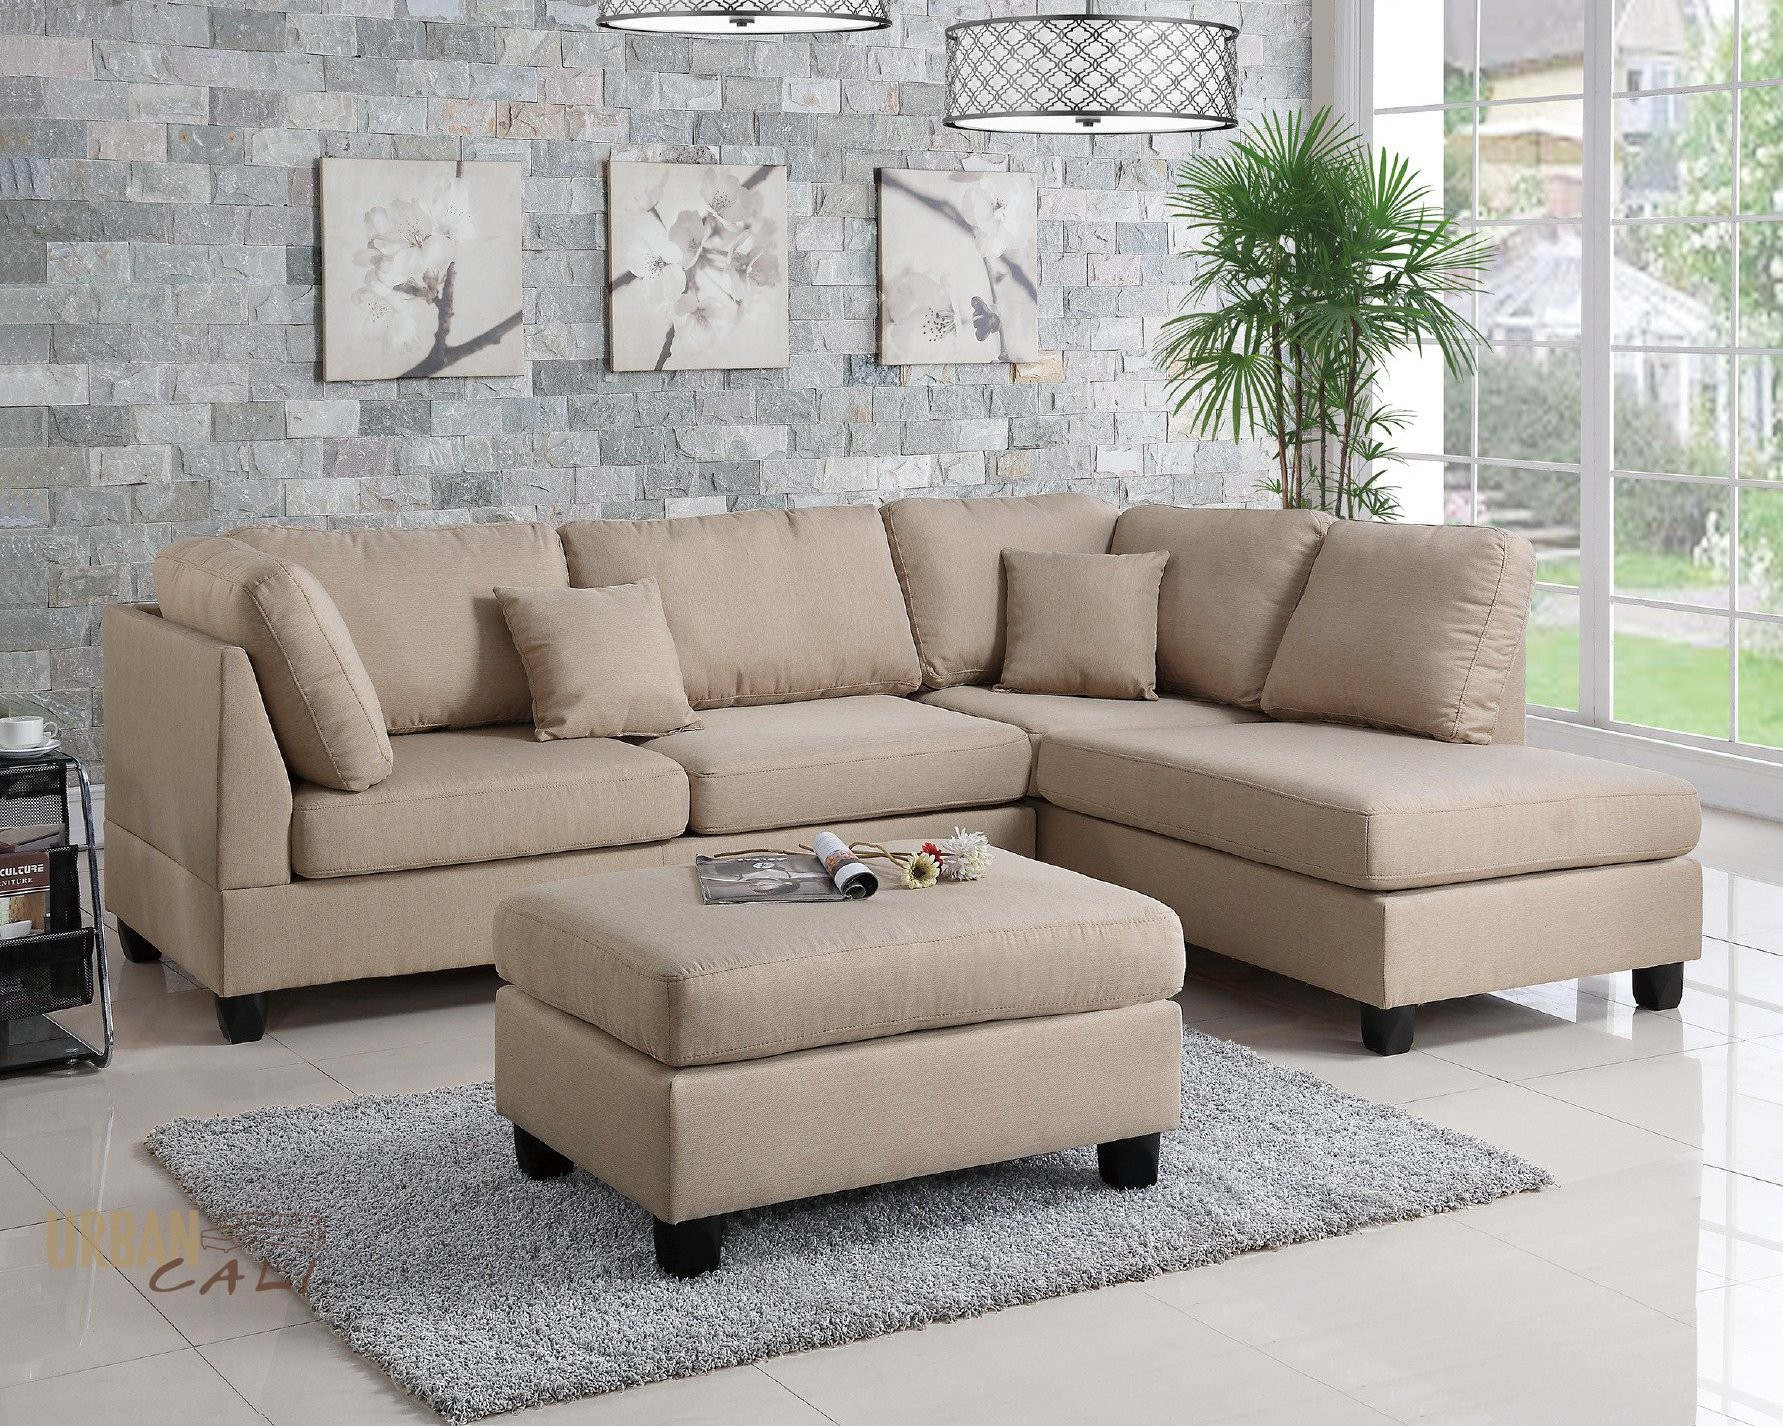 Linen Sectional sofa Fascinating Urban Cali San Francisco Sand Linen Sectional with Reversible Chaise Portrait